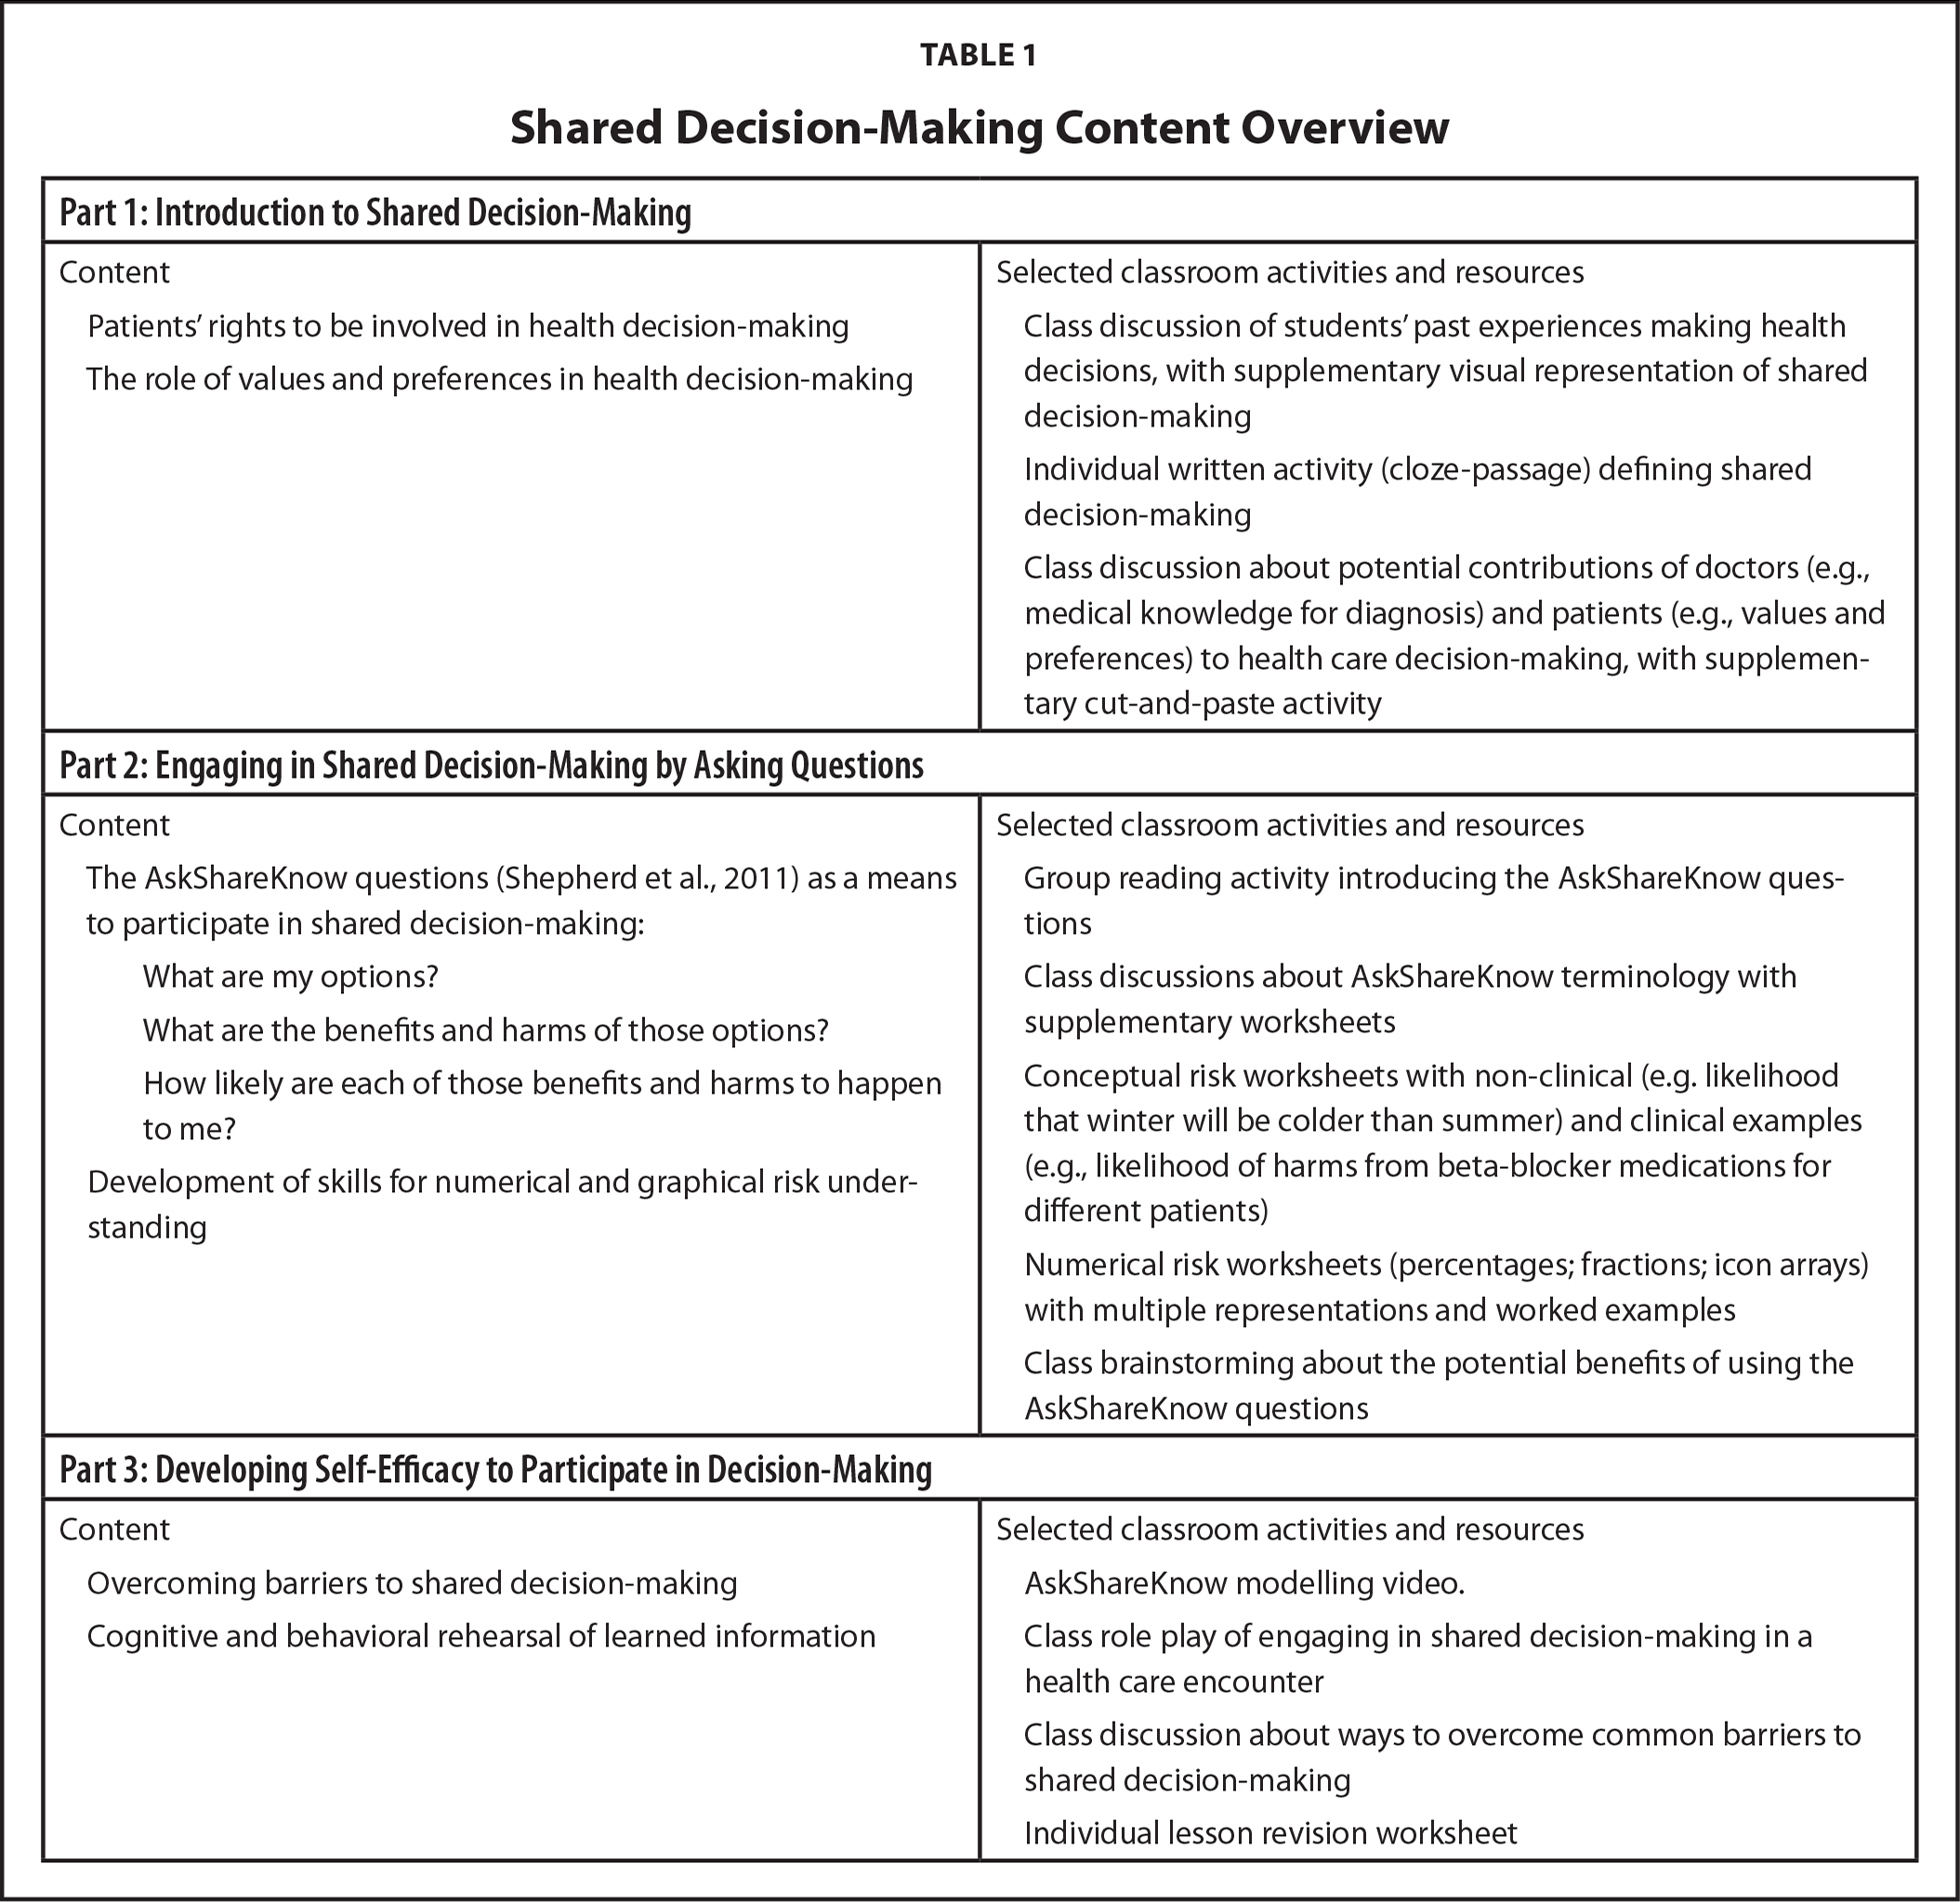 Shared Decision-Making Content Overview